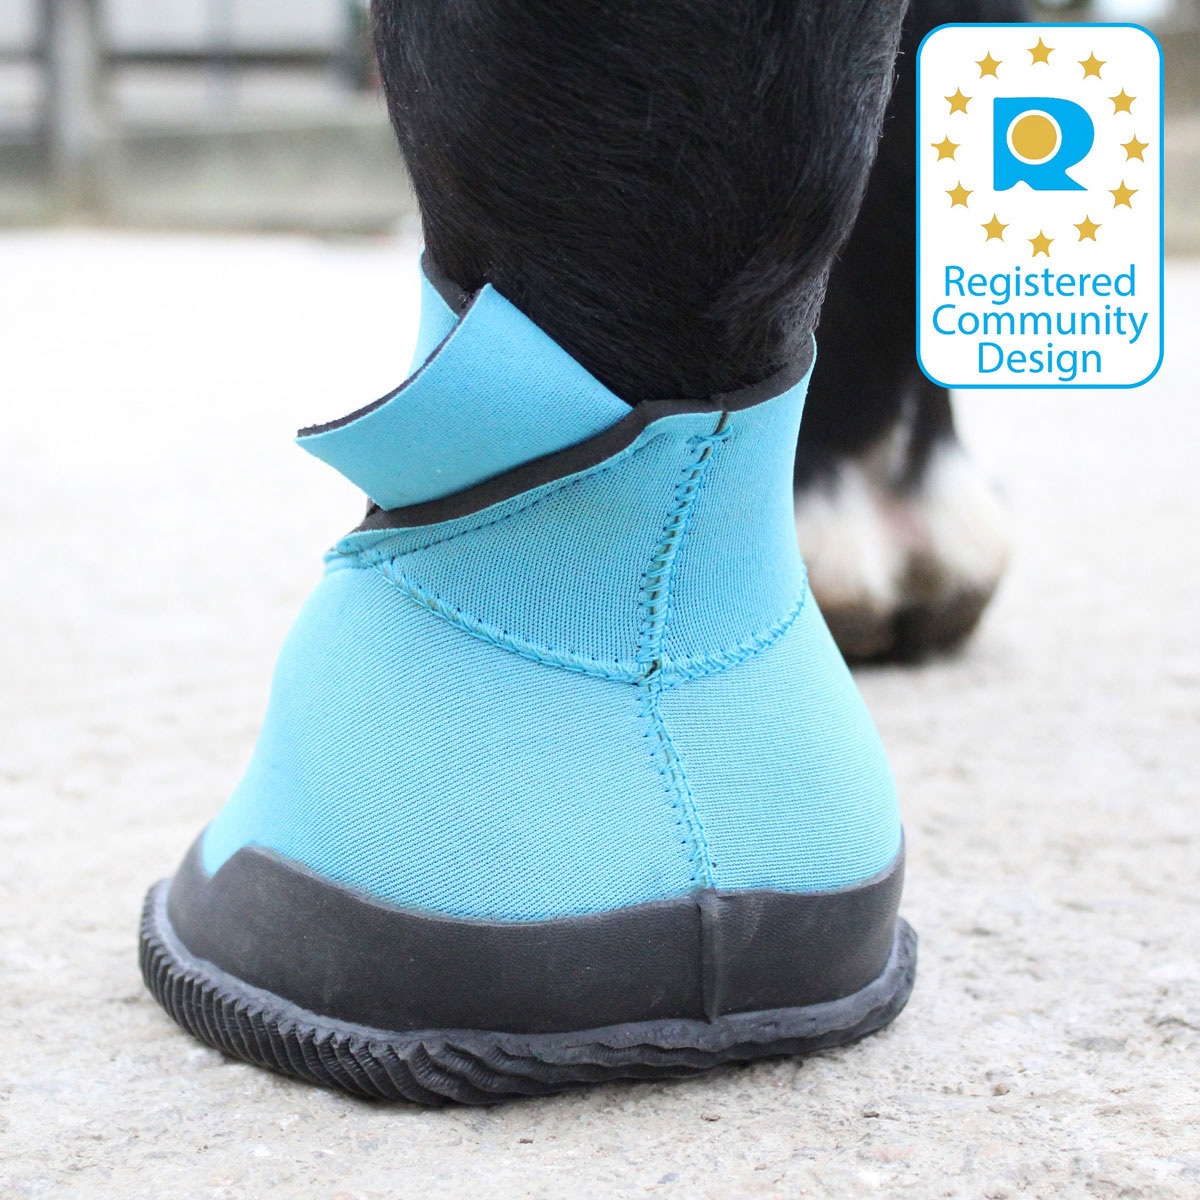 buy online 9086c 5e125 Woof Wear Medical Boot